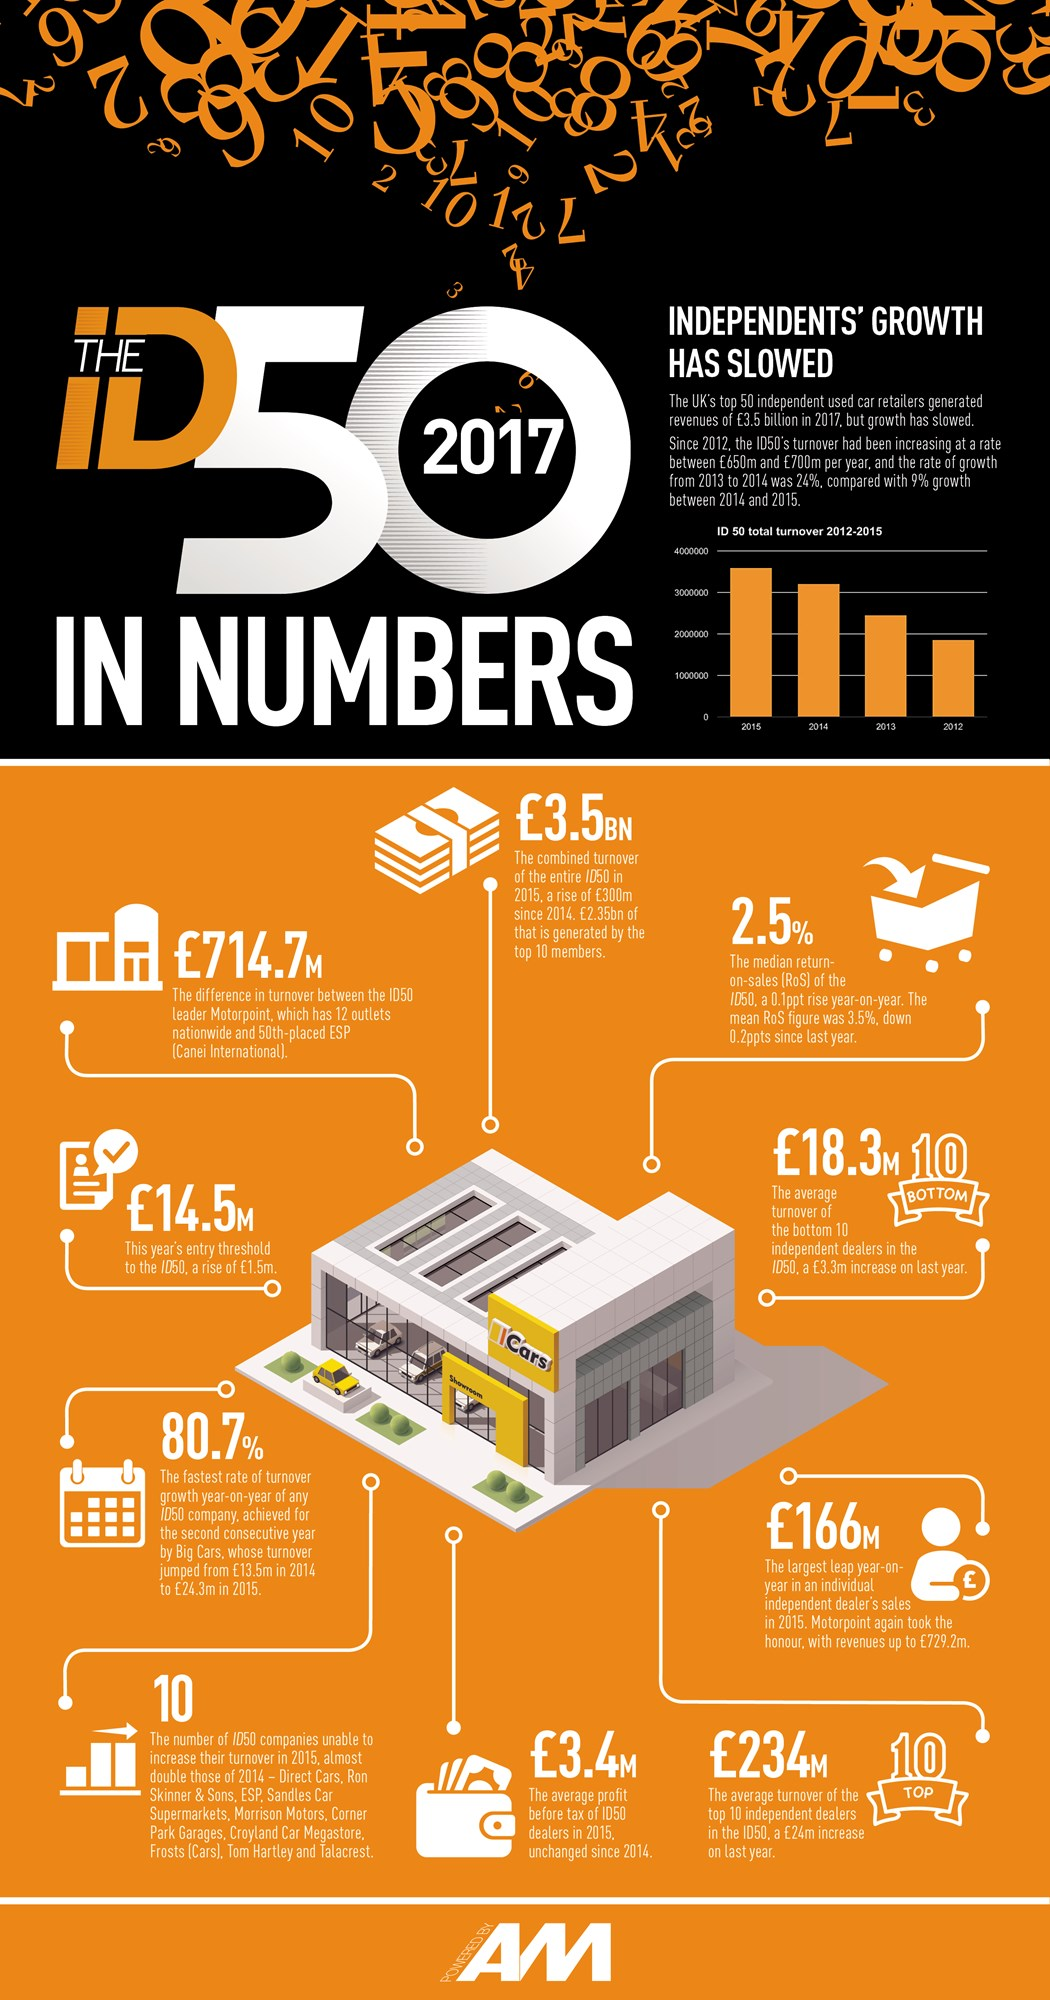 The ID50 in numbers